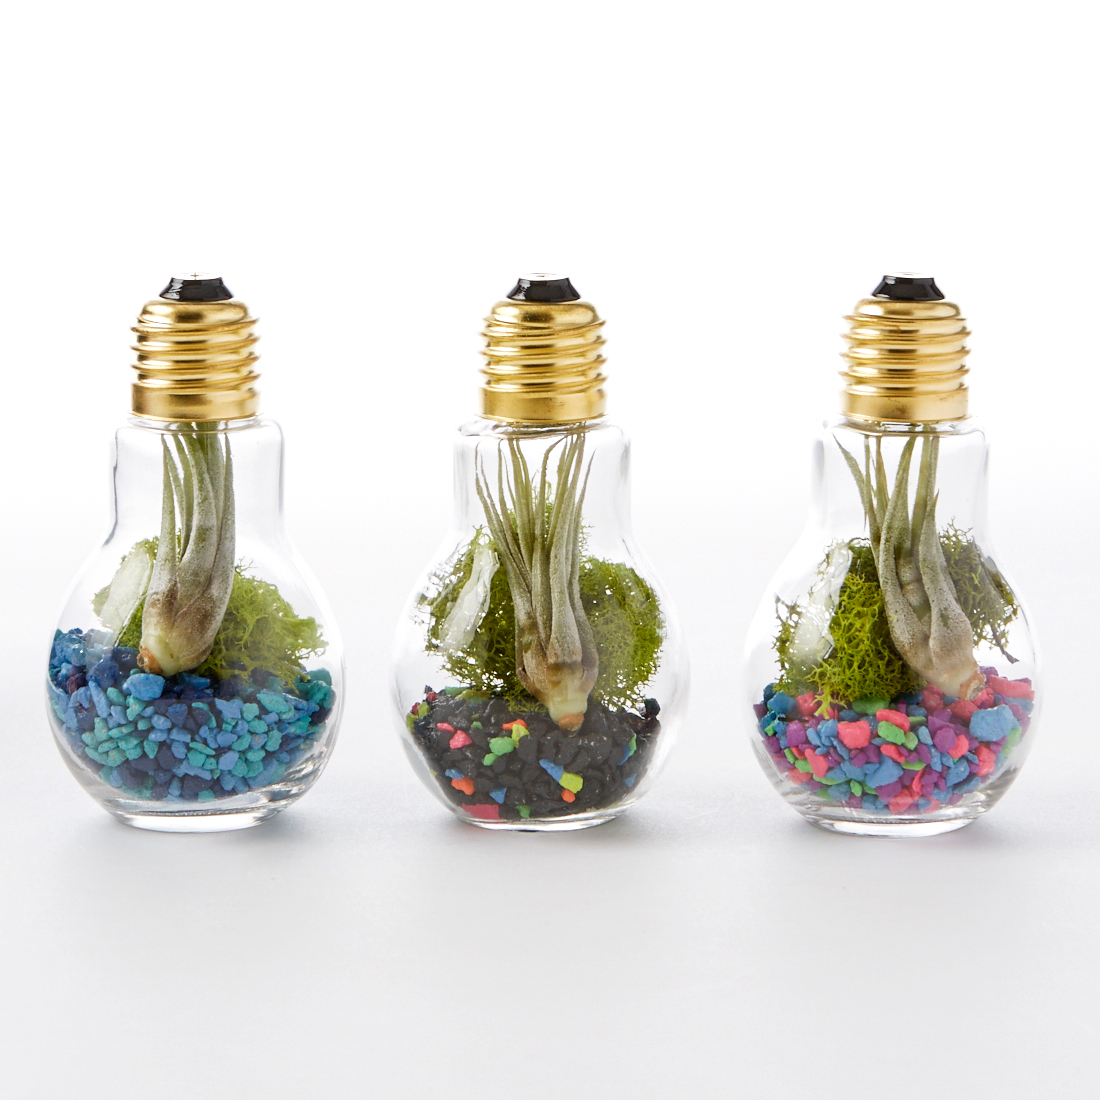 One Bedroom Design Ideas Diy Light Bulb Terrarium Adorable Home